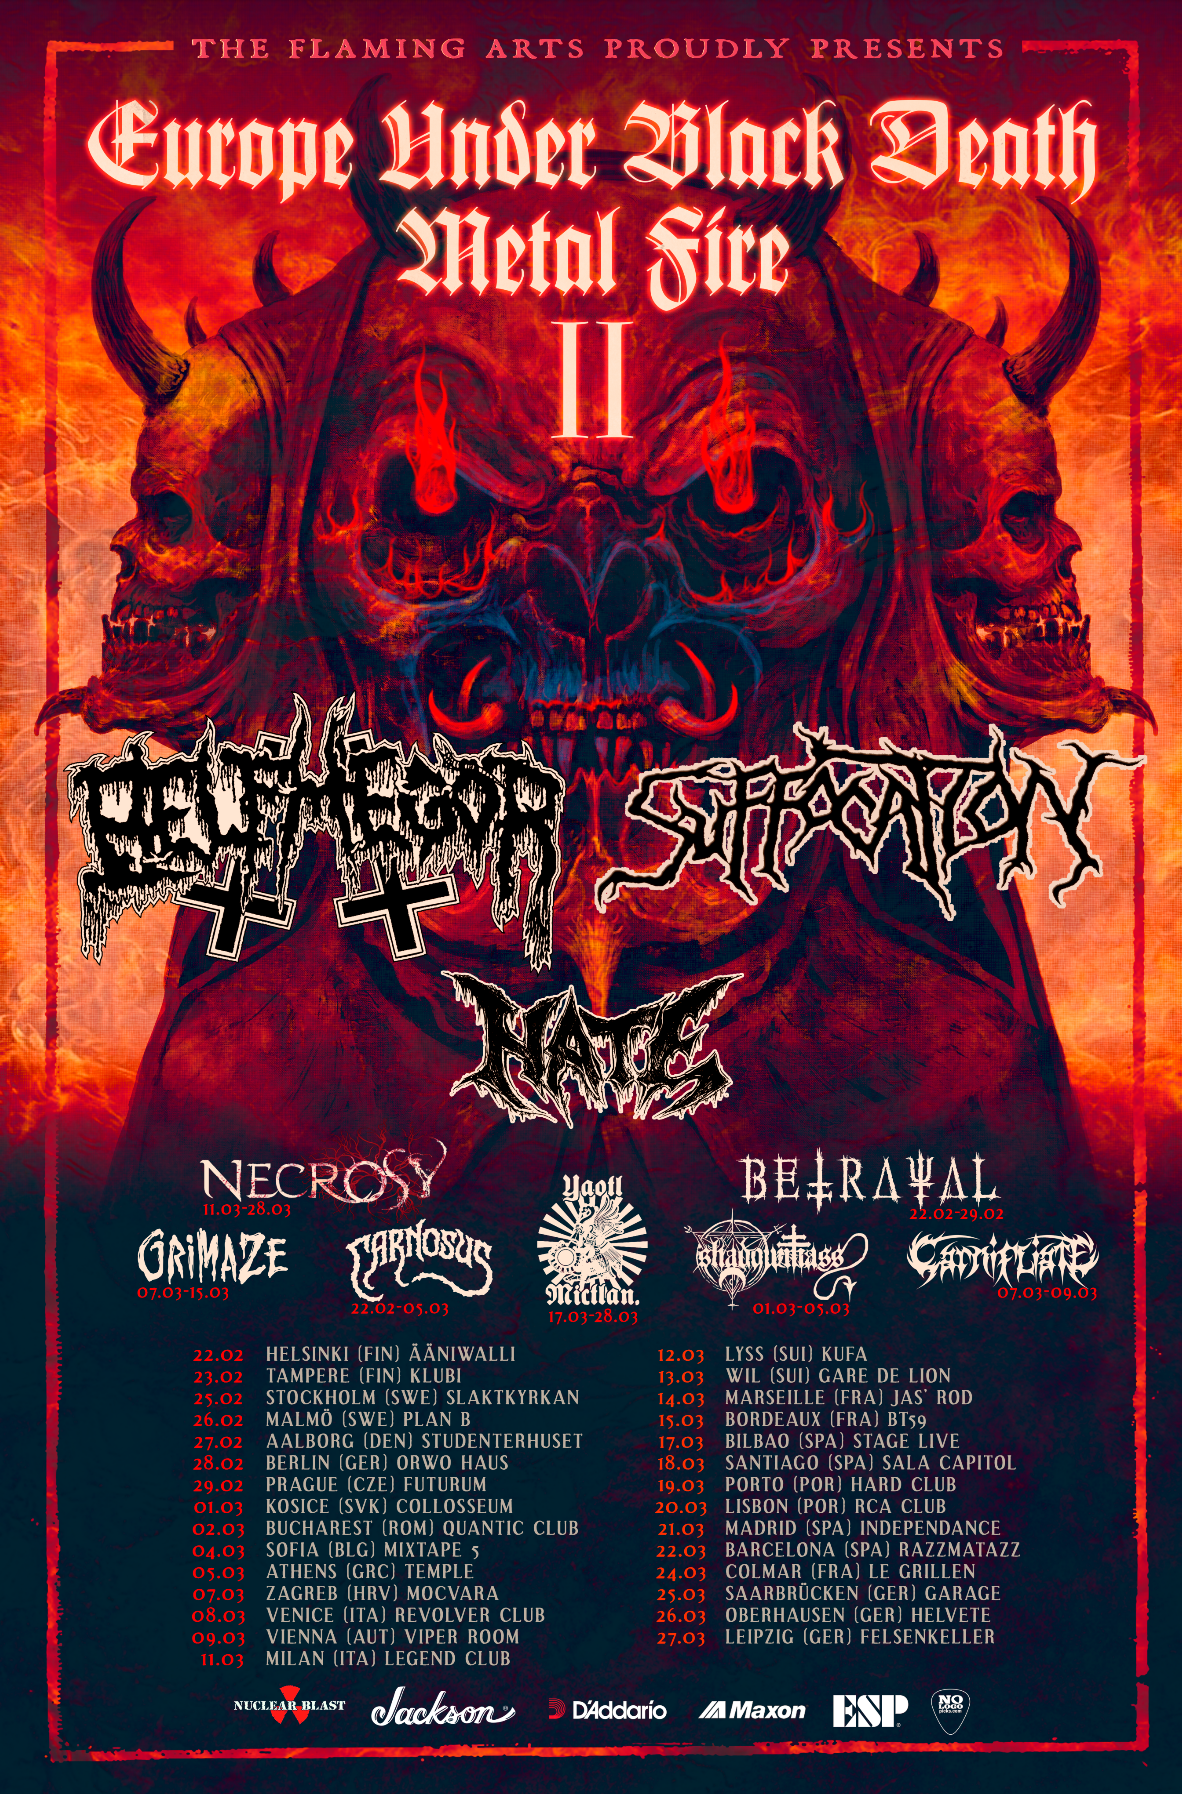 EUBDMF updated poster